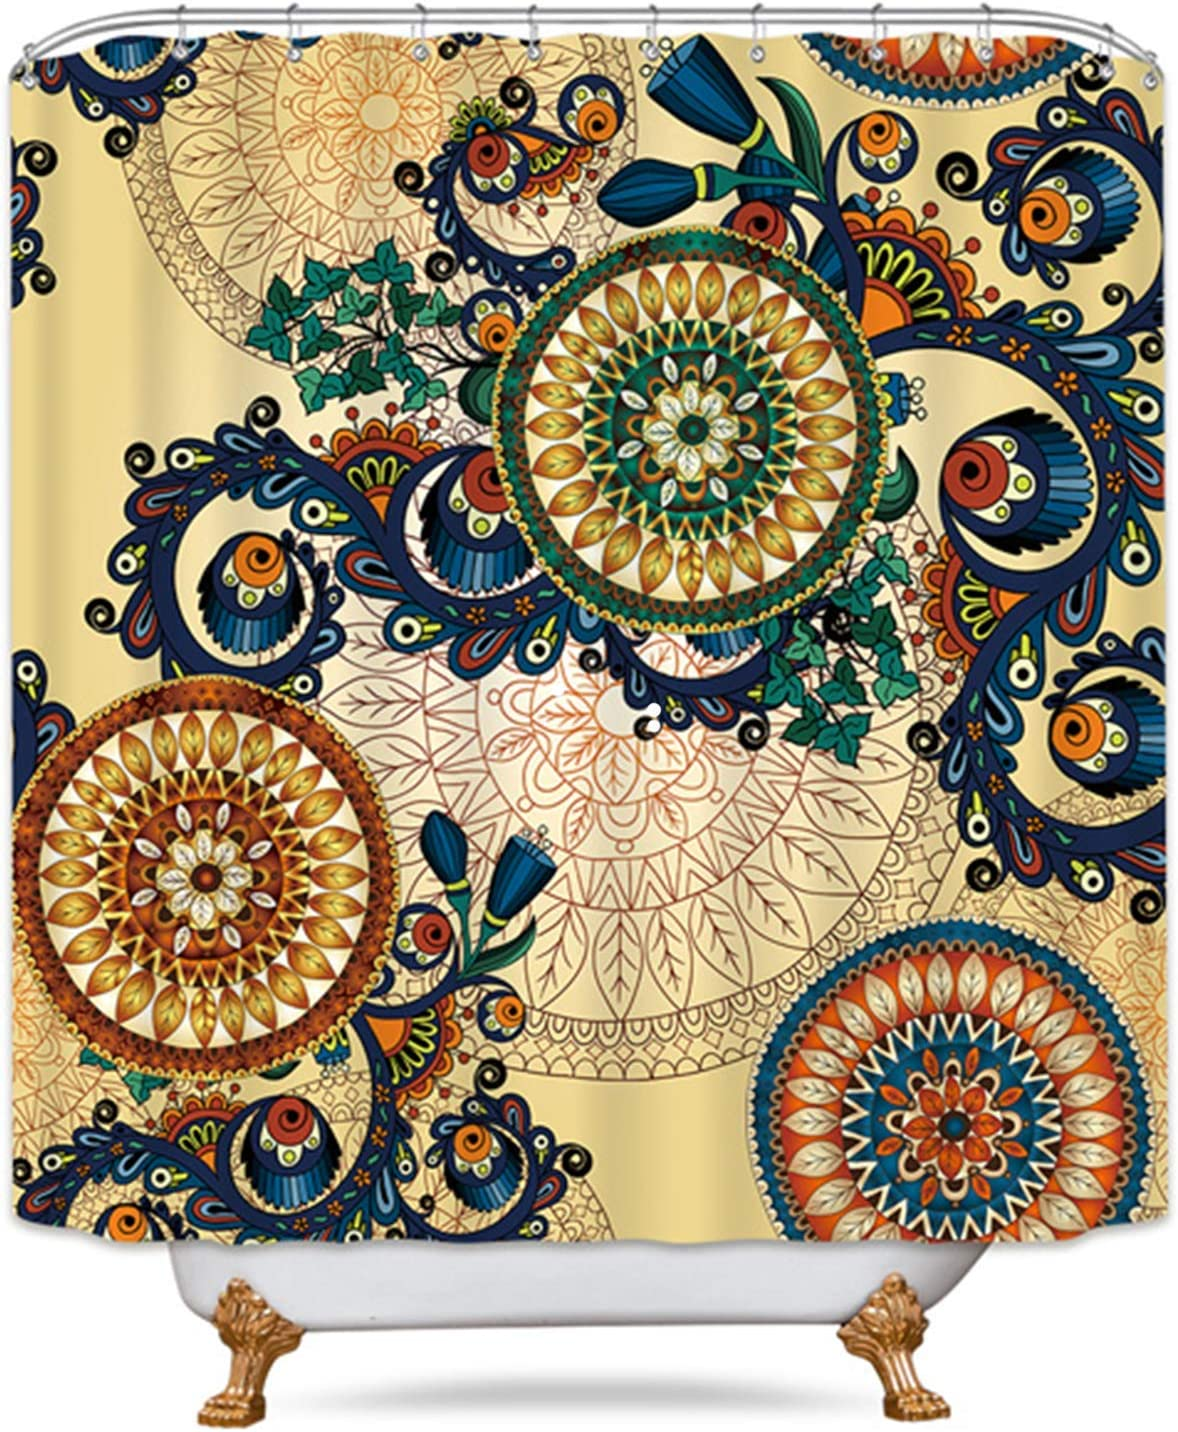 Riyidecor Mandala Shower Curtain Boho Medallion Brown Retro Floral Bohemian 12 Pack Metal Hook India Ethnic Geometric Multicolor Flower Fabric Waterproof Home Bathtub Decor 72x72 Inch